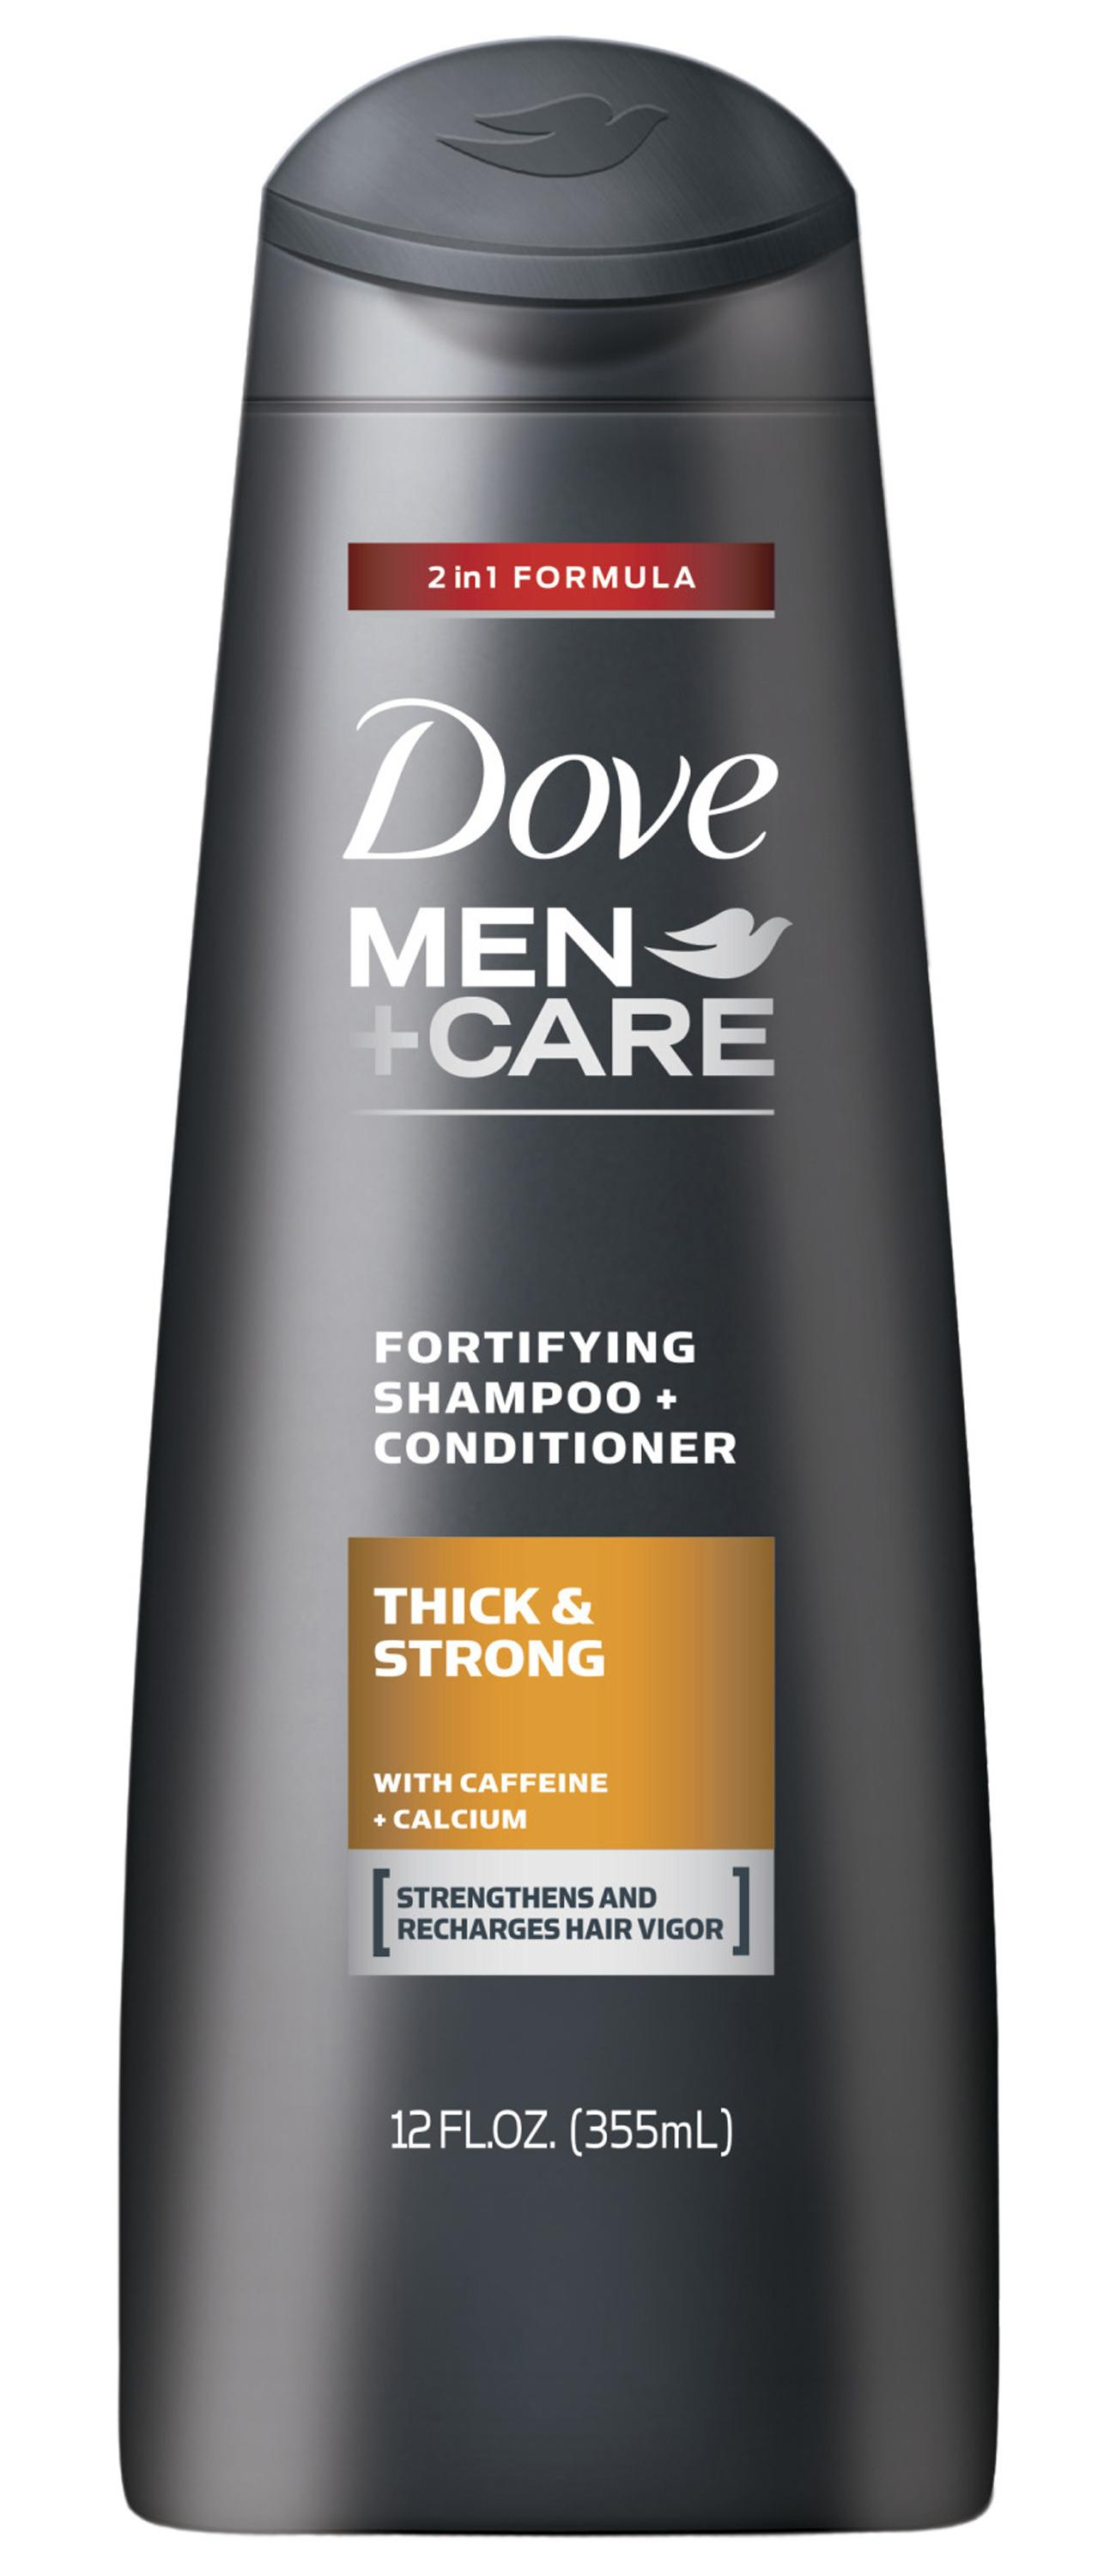 If you have boys, then this is the body wash for you! This Dove Men + Plus Care Body and Face Wash is perfect because it is the only product needed in your son's bathroom.